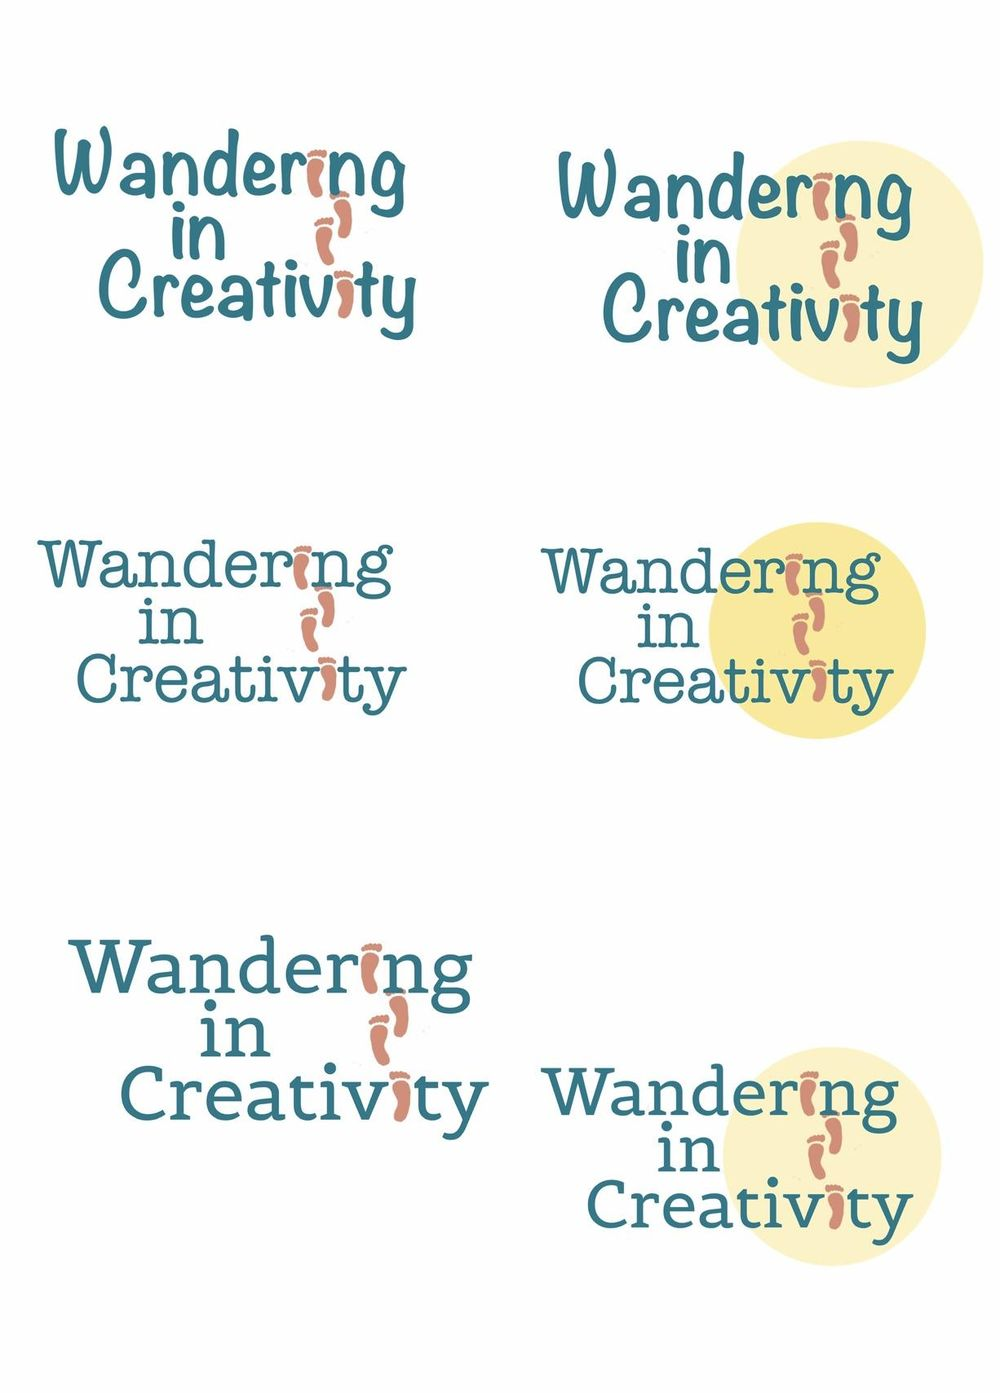 Wandering in Creativity (W.I.C.) - image 5 - student project